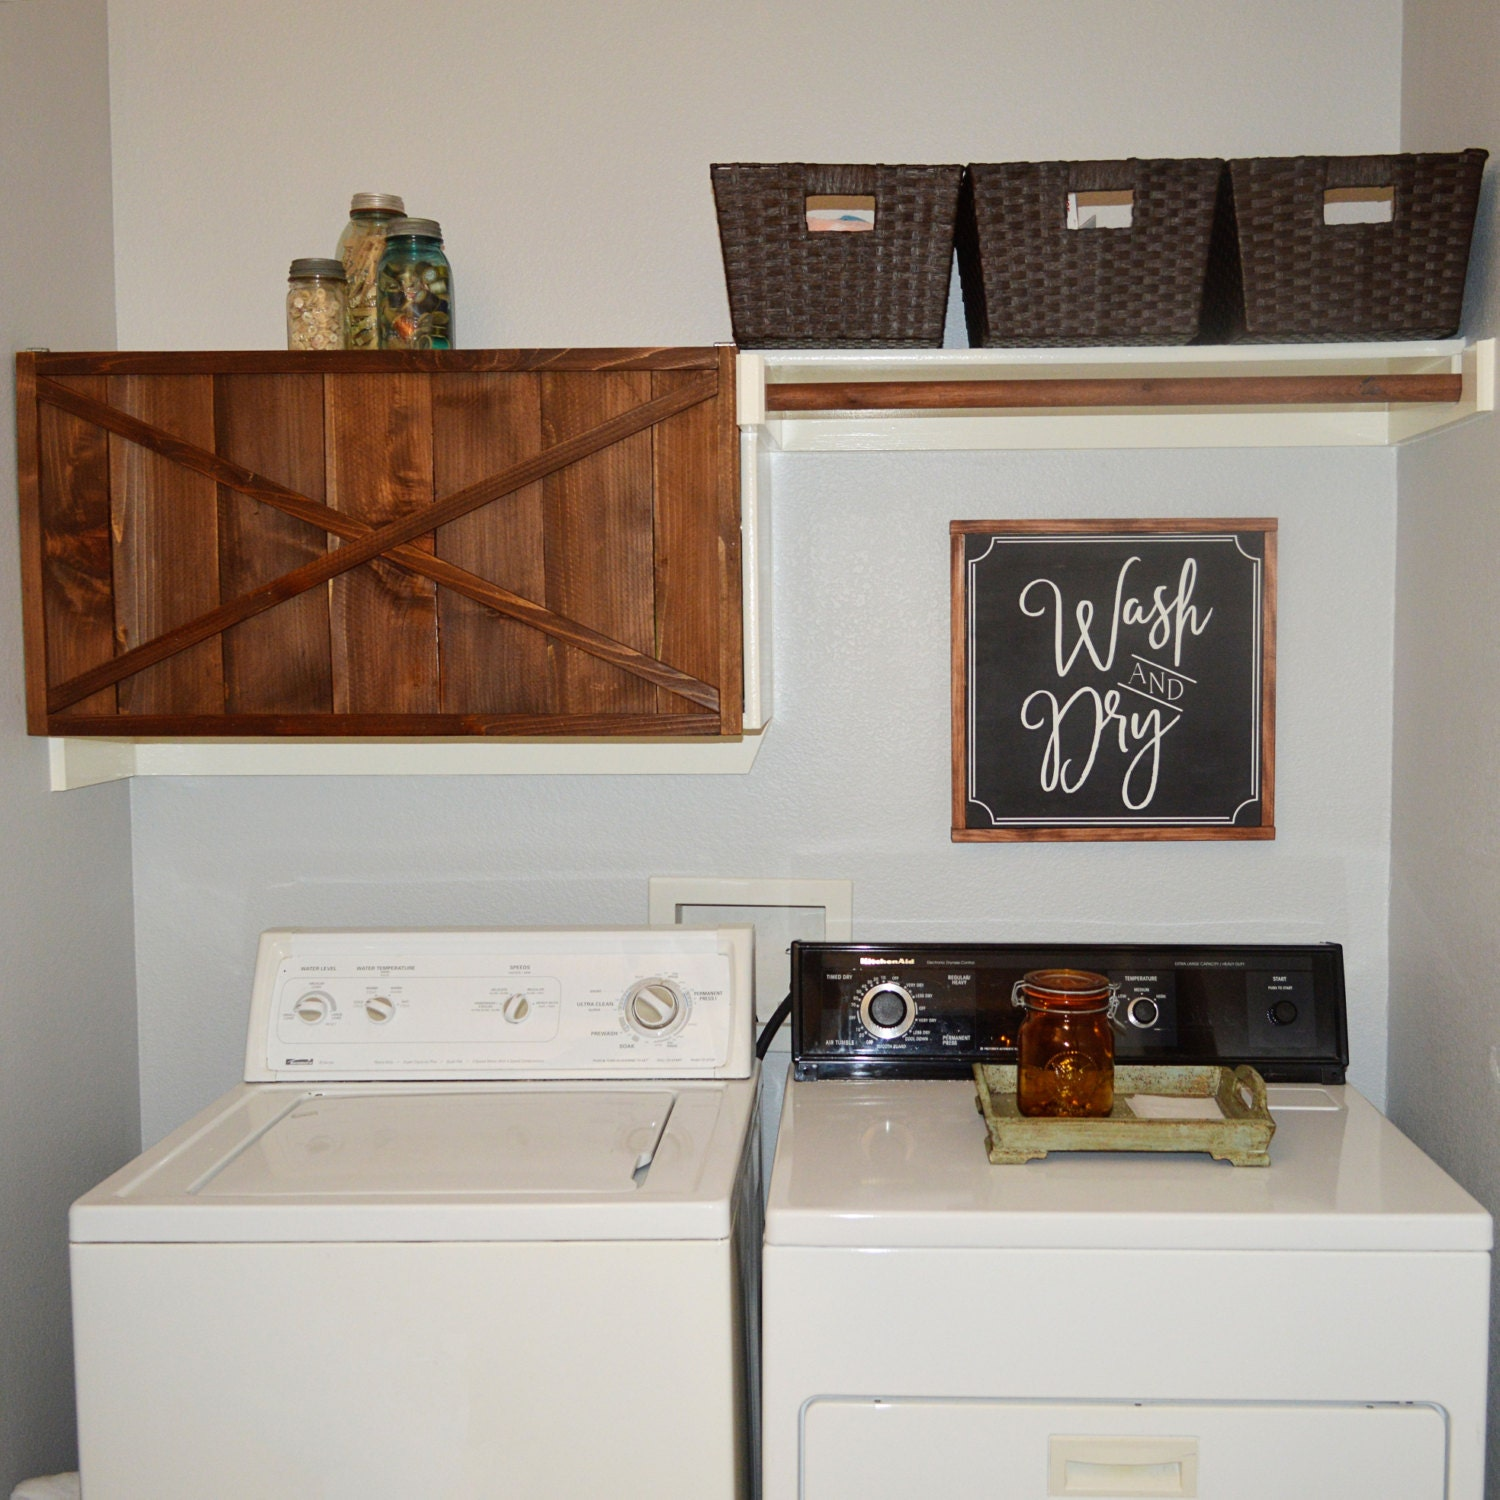 Joanna Gaines Home Decor Inspiration: Wash And Dry Joanna Gaines Inspired Laundry Room Decor Fixer